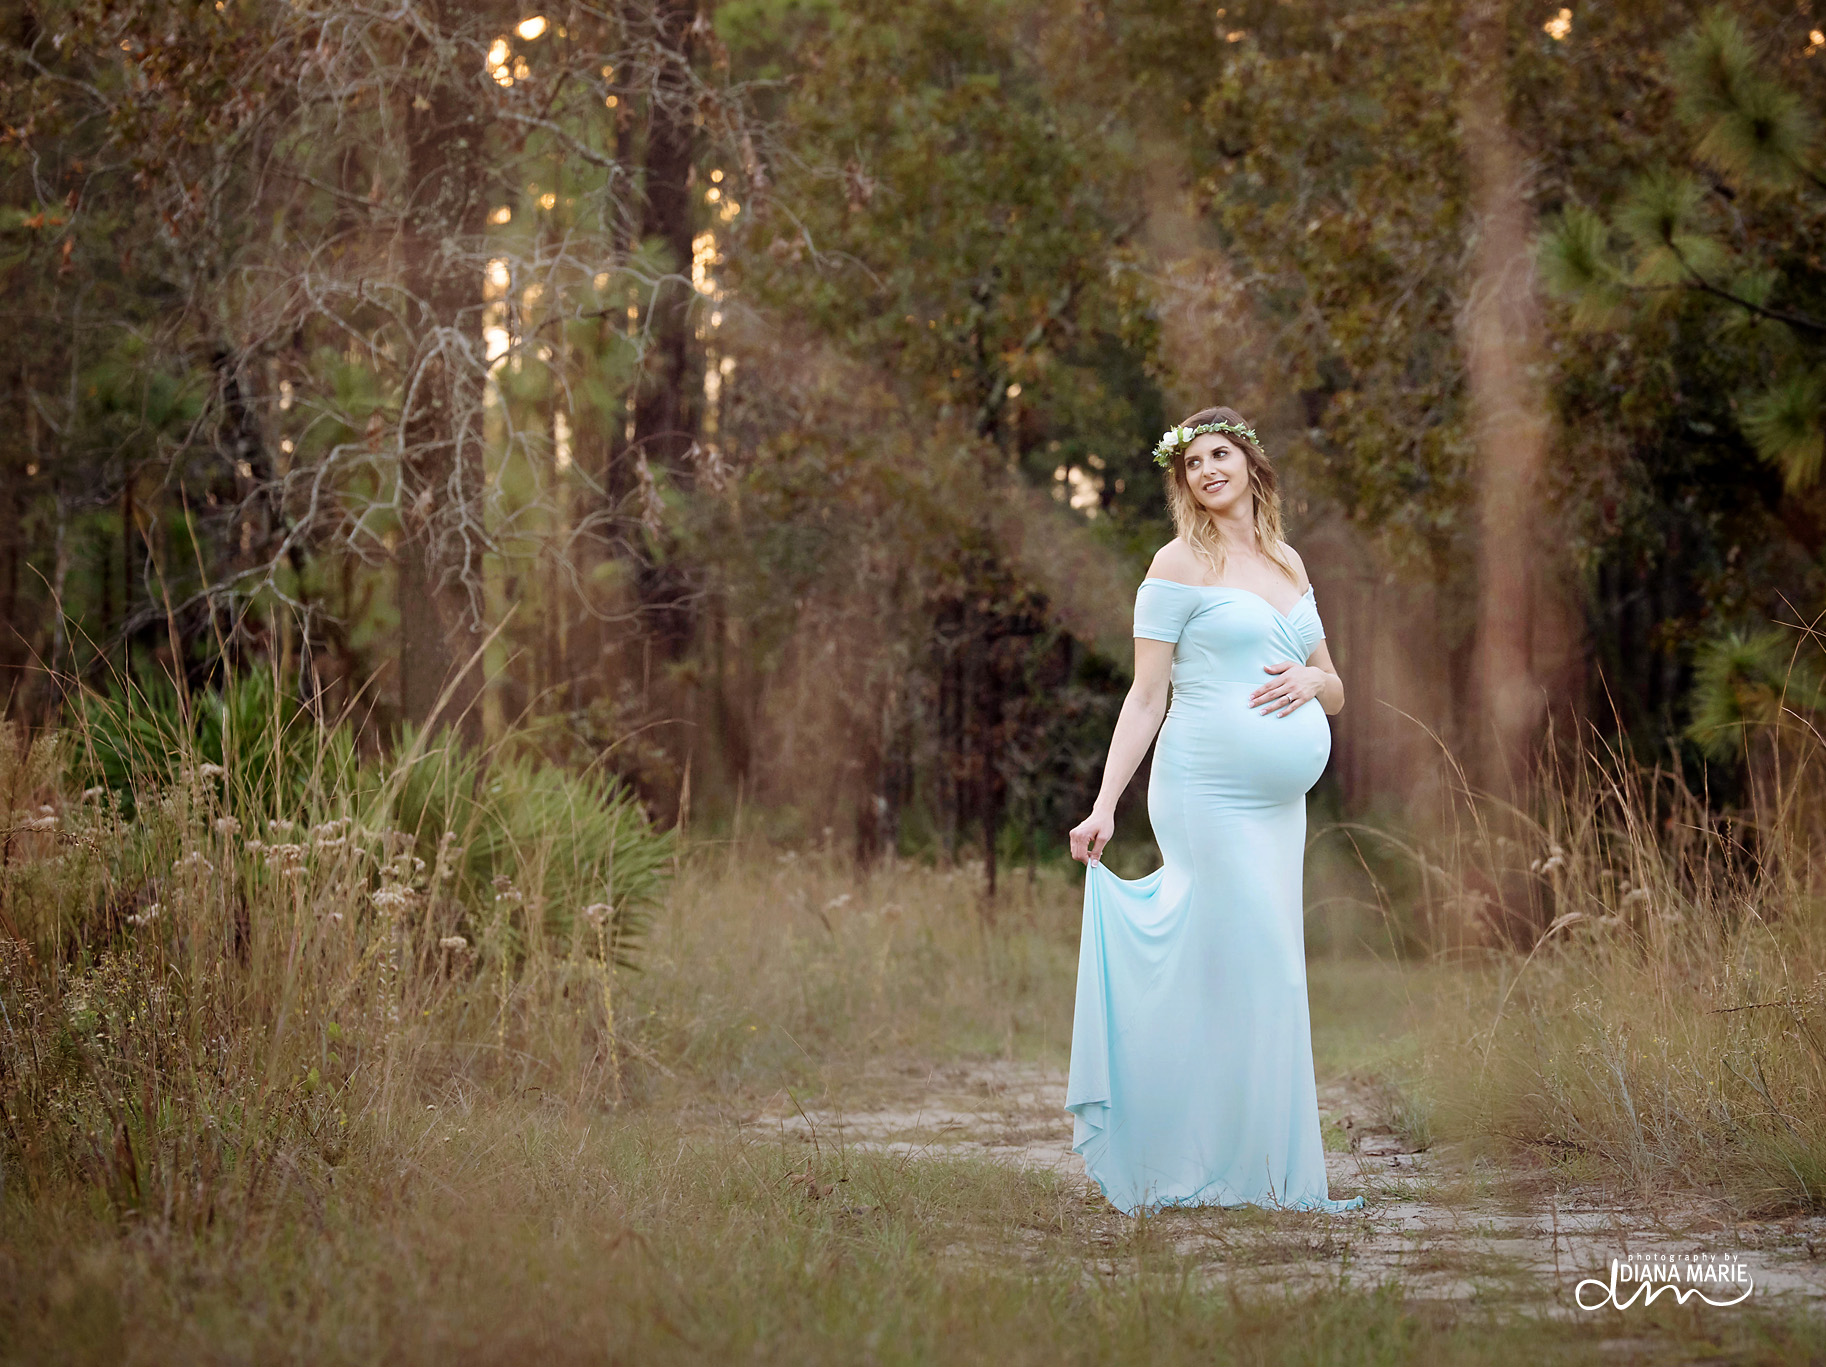 Titling/Alt text/Description: 1. jacksonville newborn photography 2. jacksonville maternity 3. st augustine newborn 4. maternity session 5. maternity dress